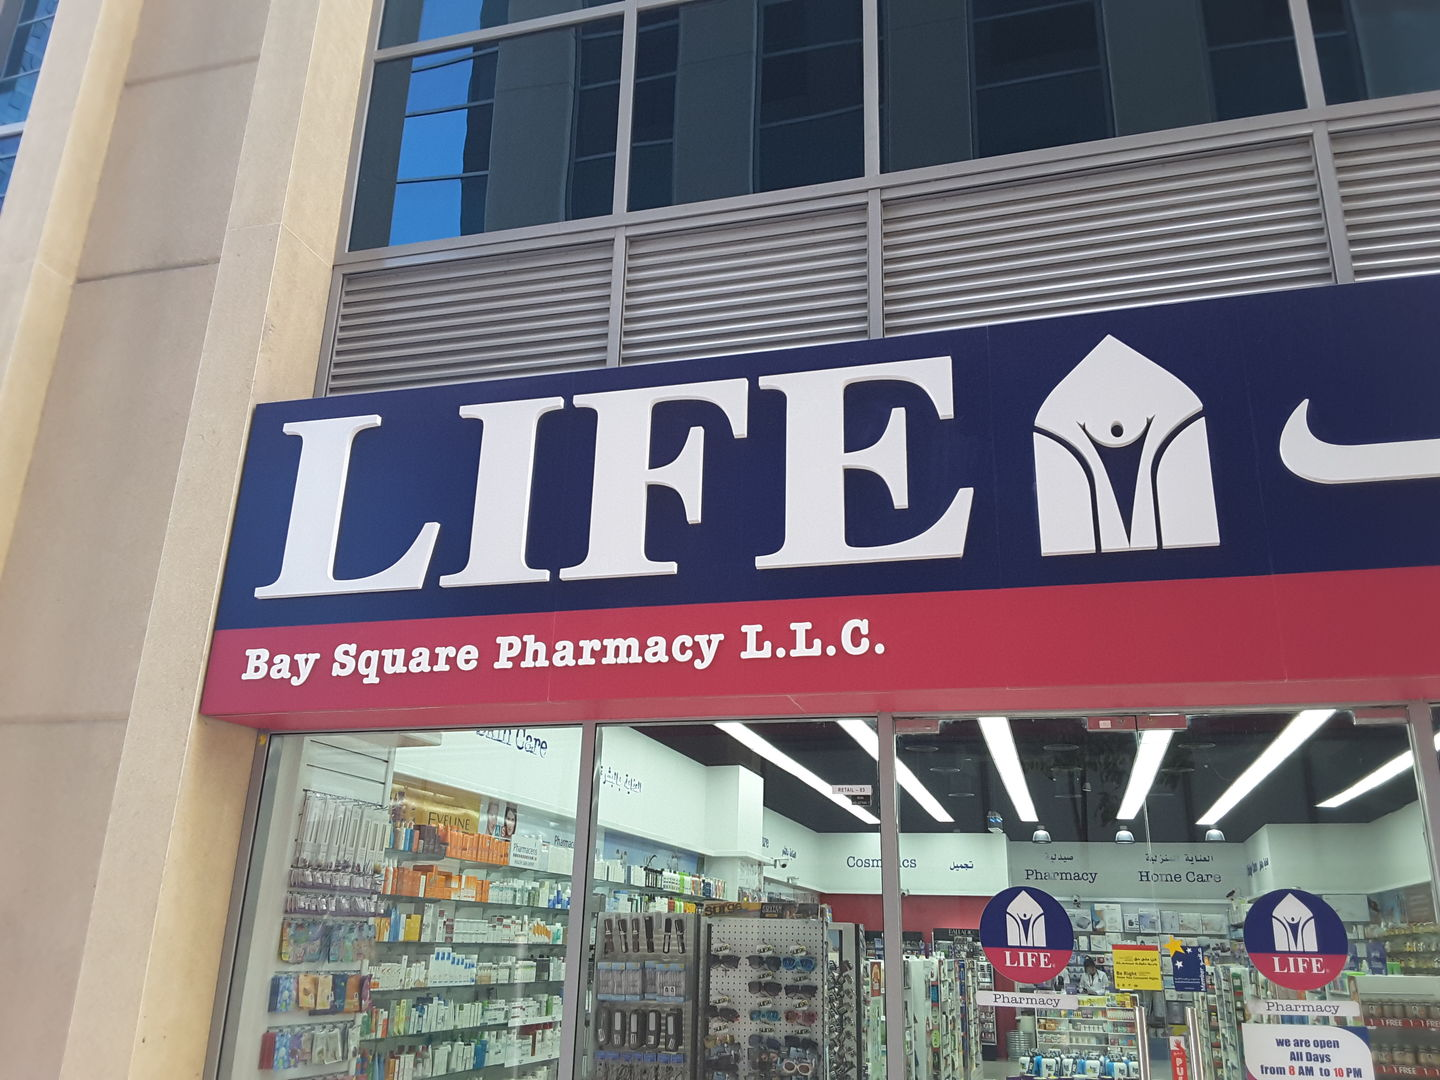 HiDubai-business-life-pharmacy-bay-square-pharmacy-beauty-wellness-health-pharmacy-business-bay-dubai-2